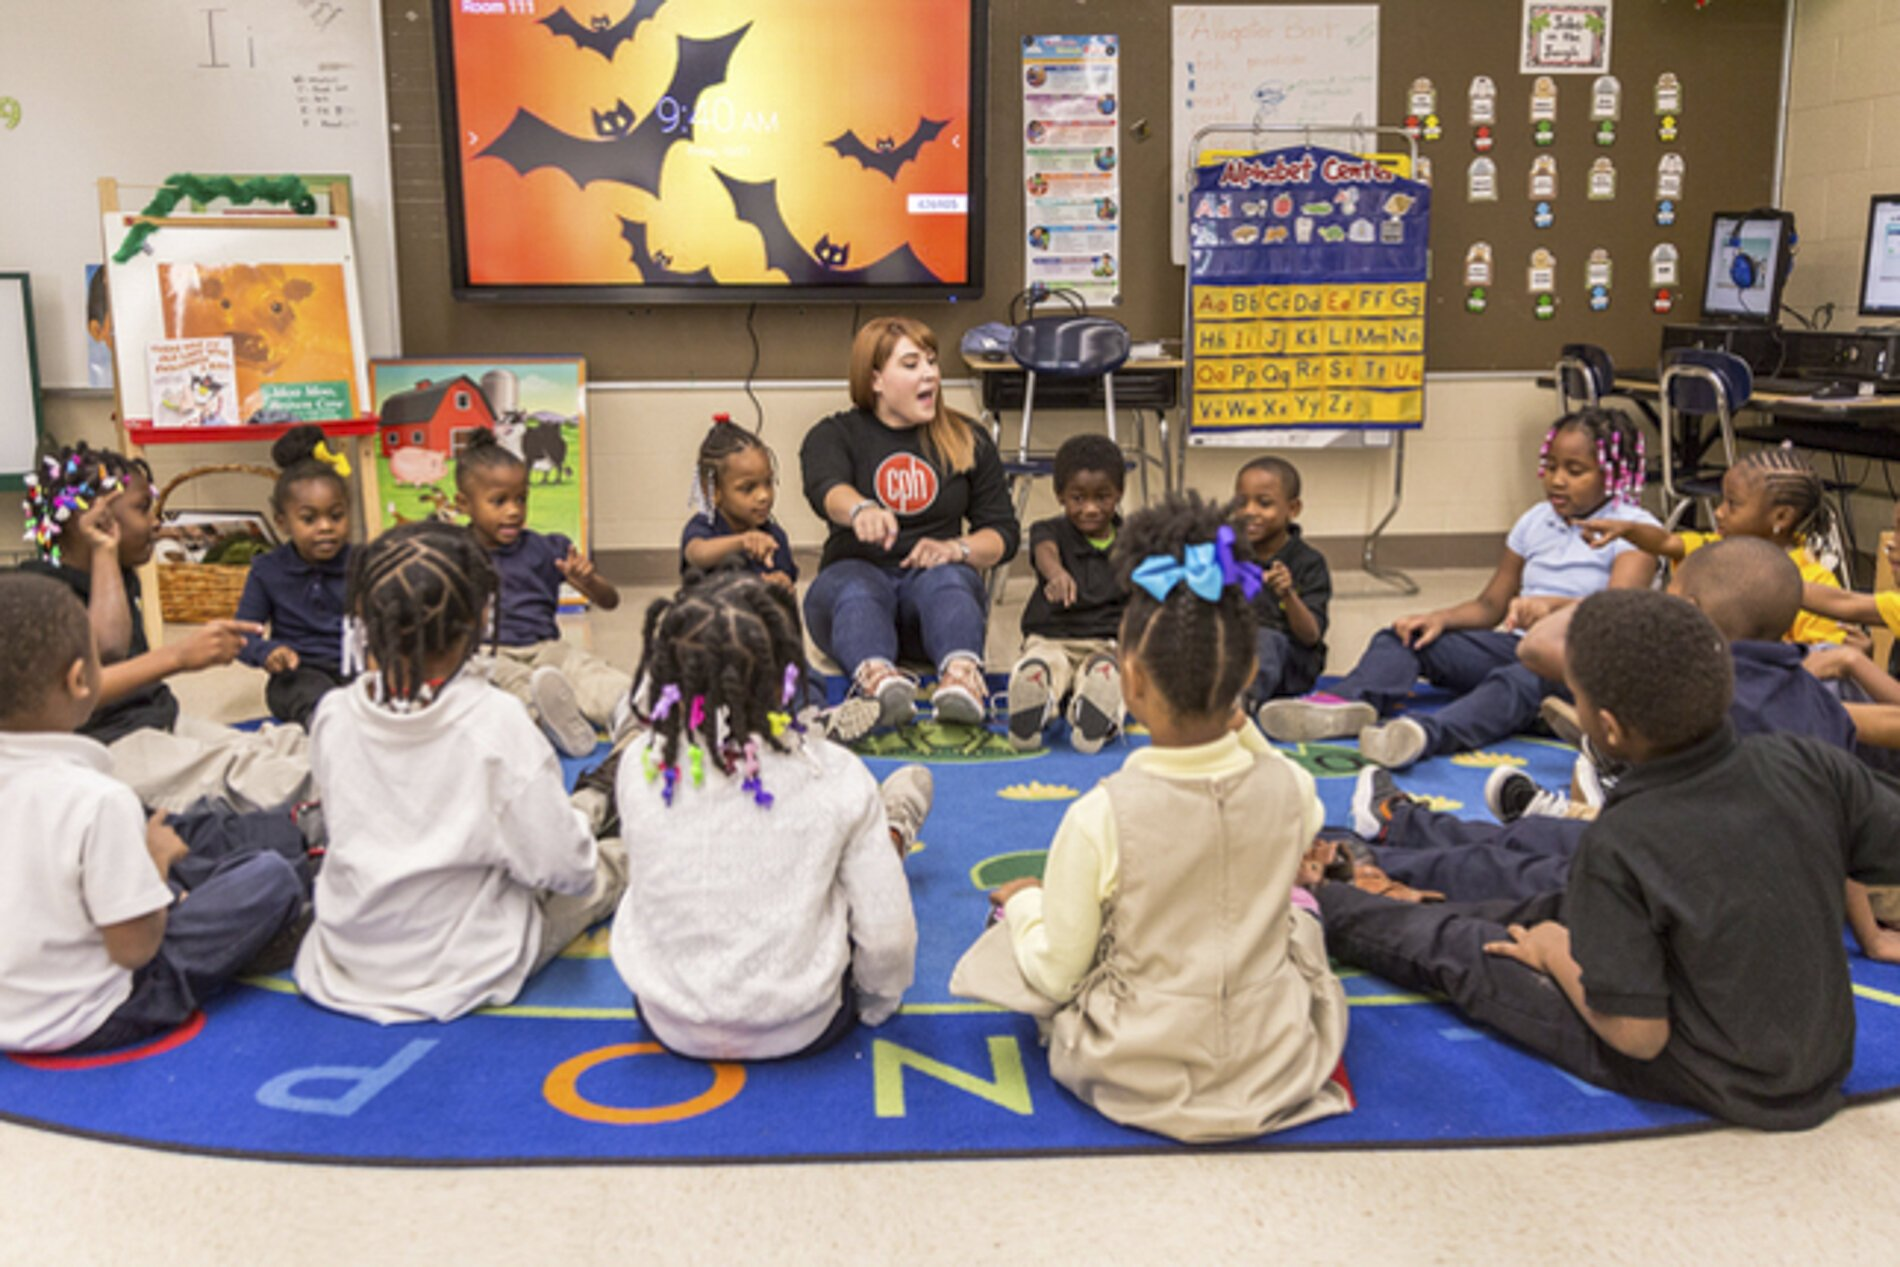 CARE is a theatre education program that draws on lessons from social-emotional learning theories, trauma-informed care, and evidence-based literacy learning for students in grades K-8.